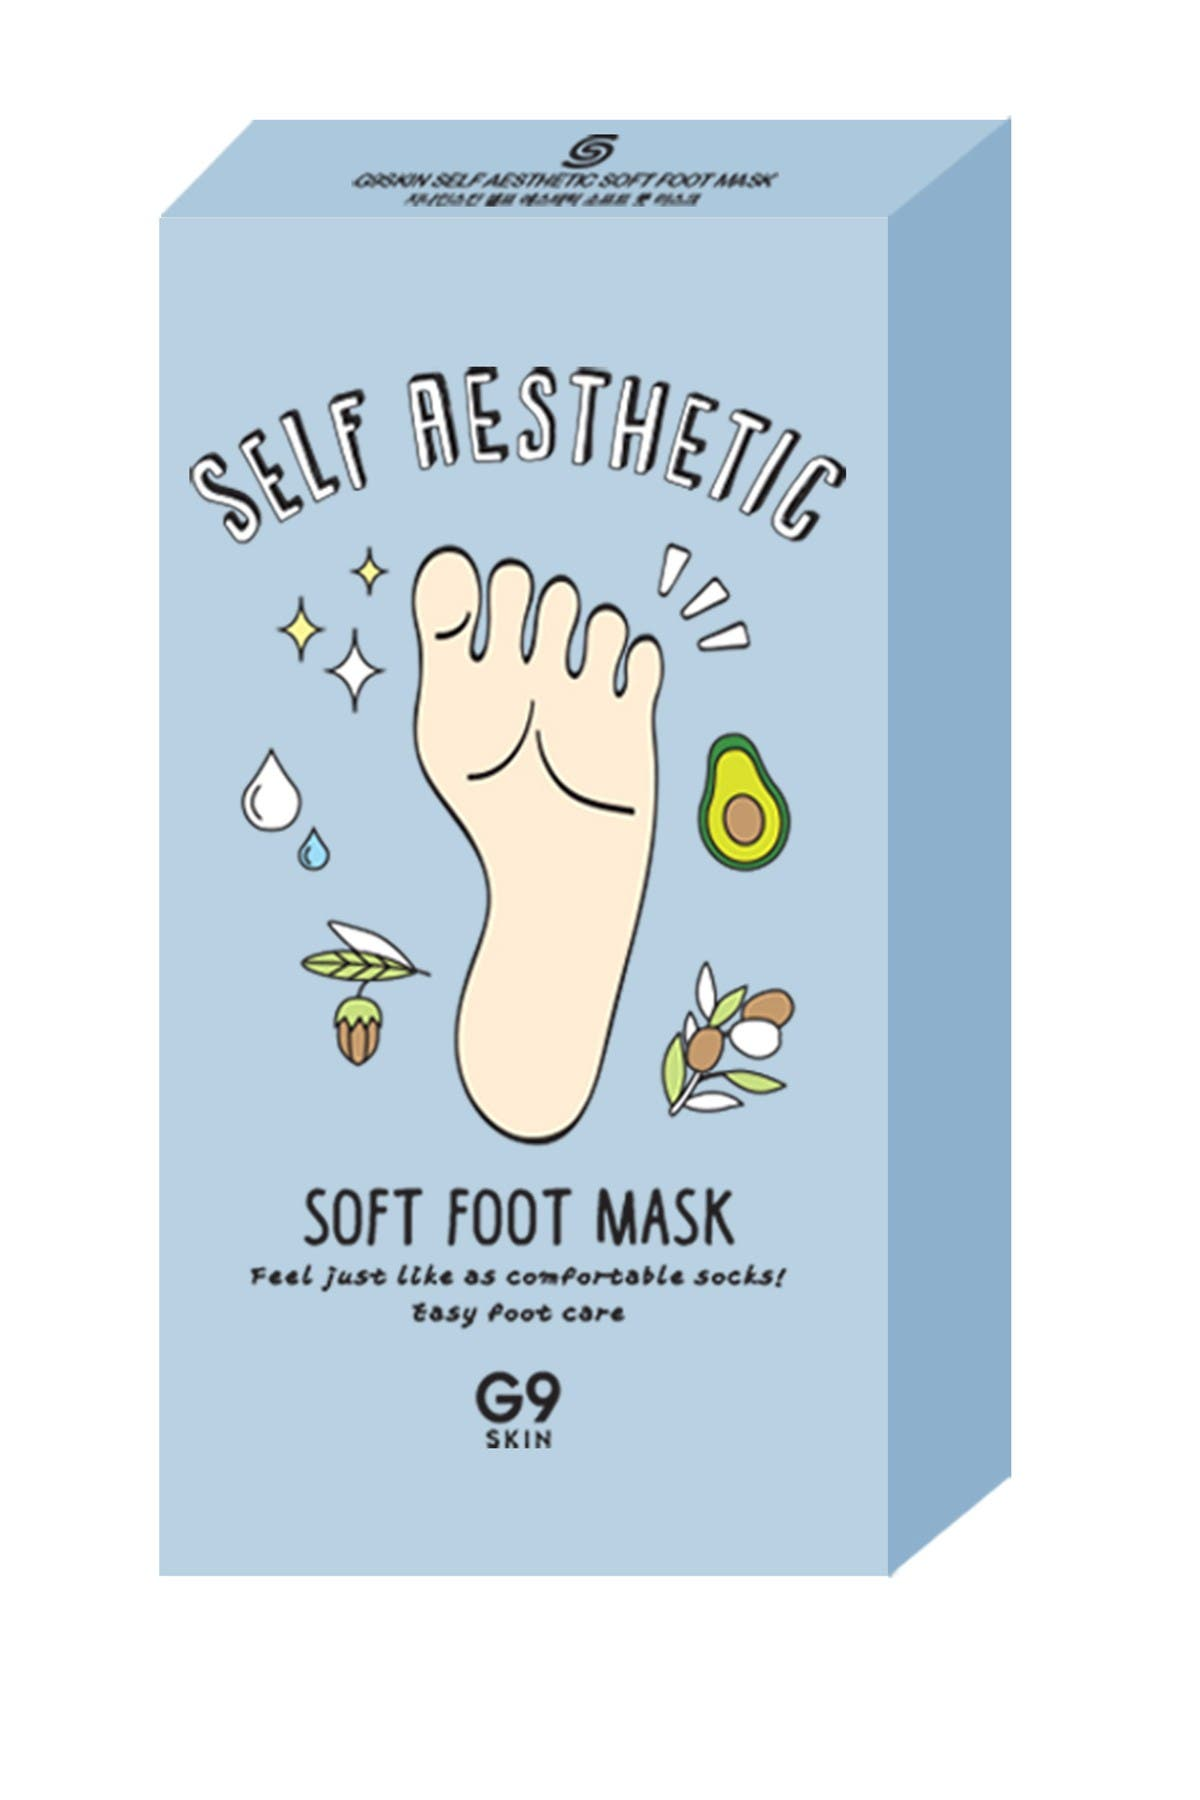 Image of G9SKIN Self Aesthetic Soft Foot Mask - 1 Box of 5 Sheets